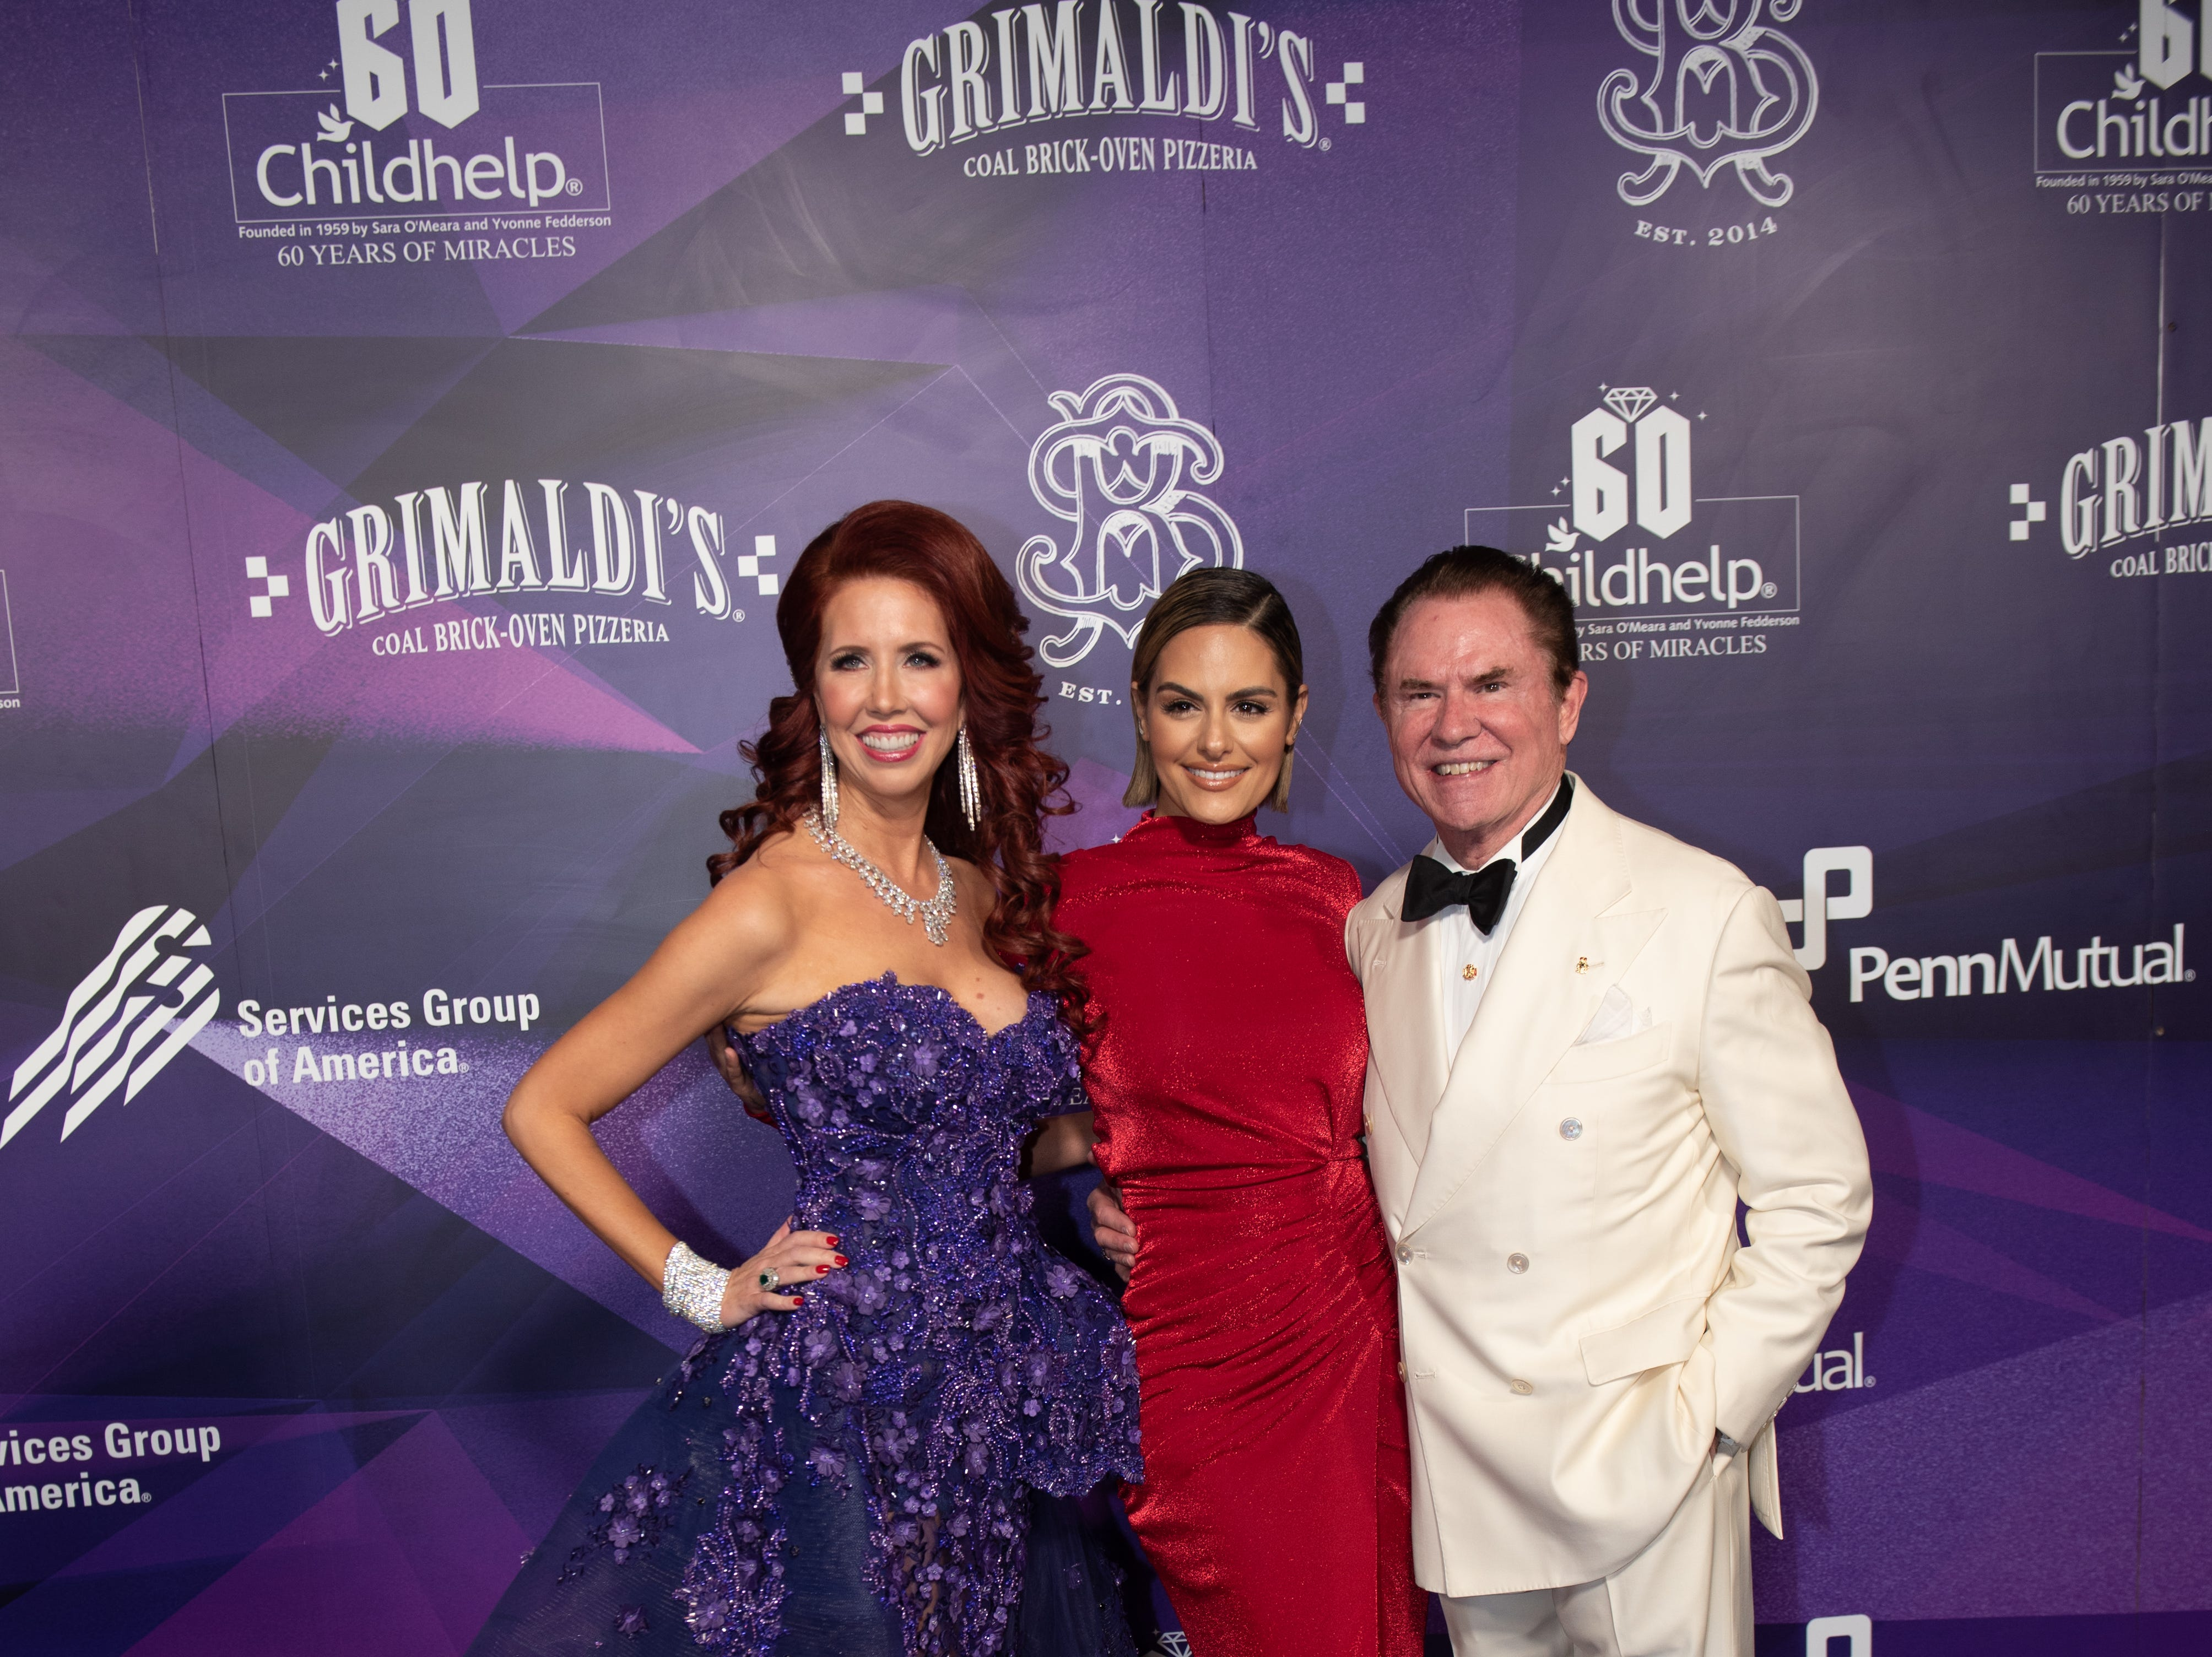 Gala Co-Chair Stacie J. Stephenson, vocalist Pia Toscano (center), and Gala Co-Chair Mr. Richard J. Stephenson attended the Childhelp Drive the Dream Gala on February 2, 2019.